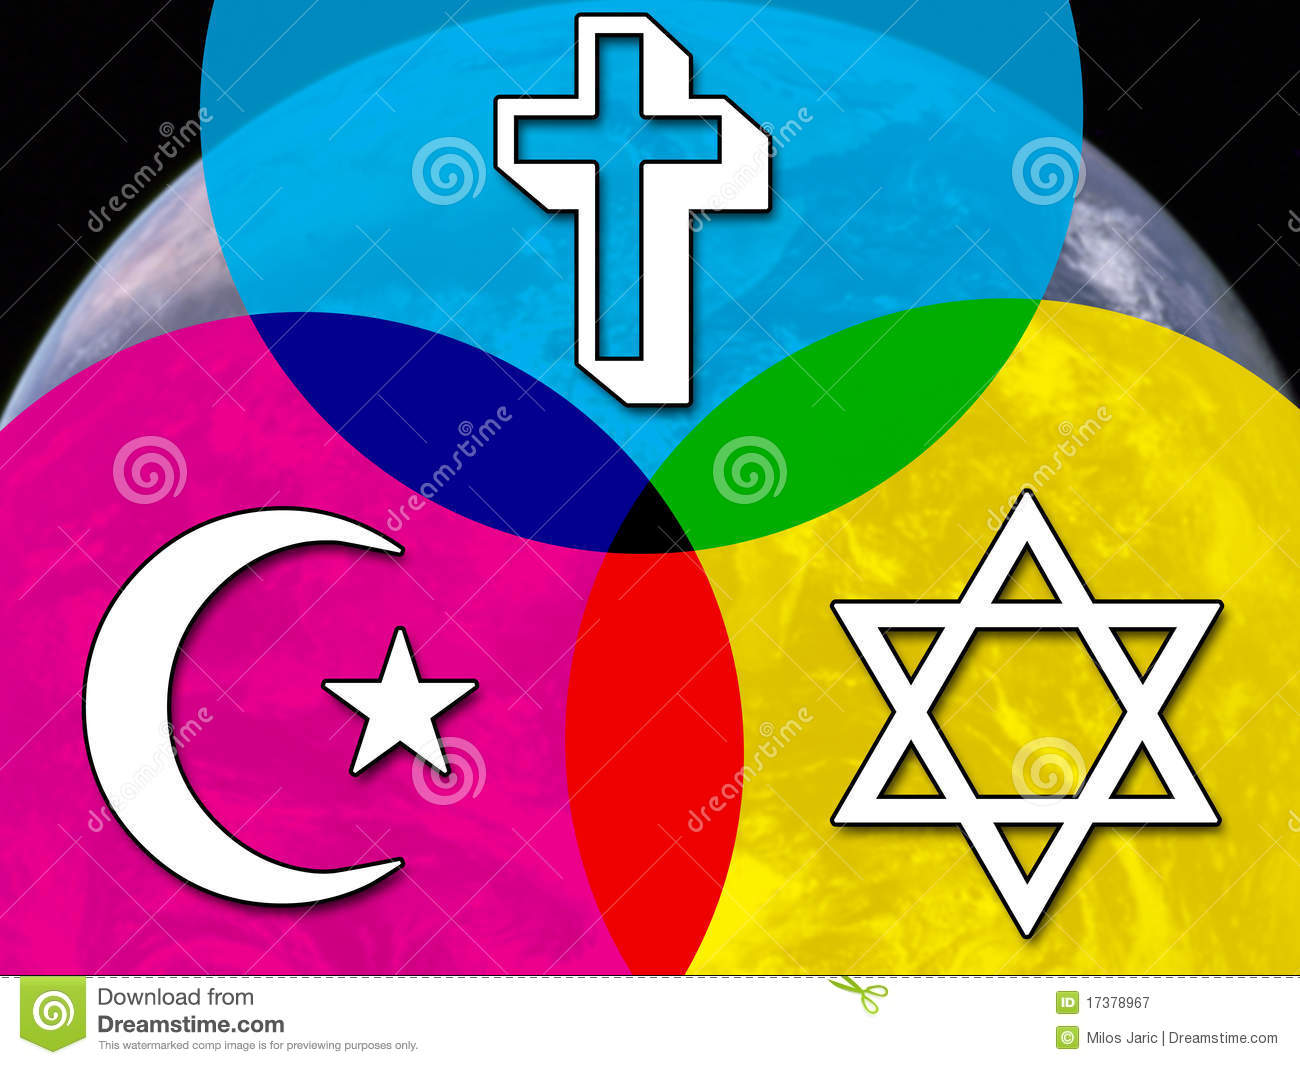 interfaith dating christian The purpose of this research is to examine the relationship of interfaith dating age, education, and economic status the literature suggests that dating behavior is influenced by religious beliefs.